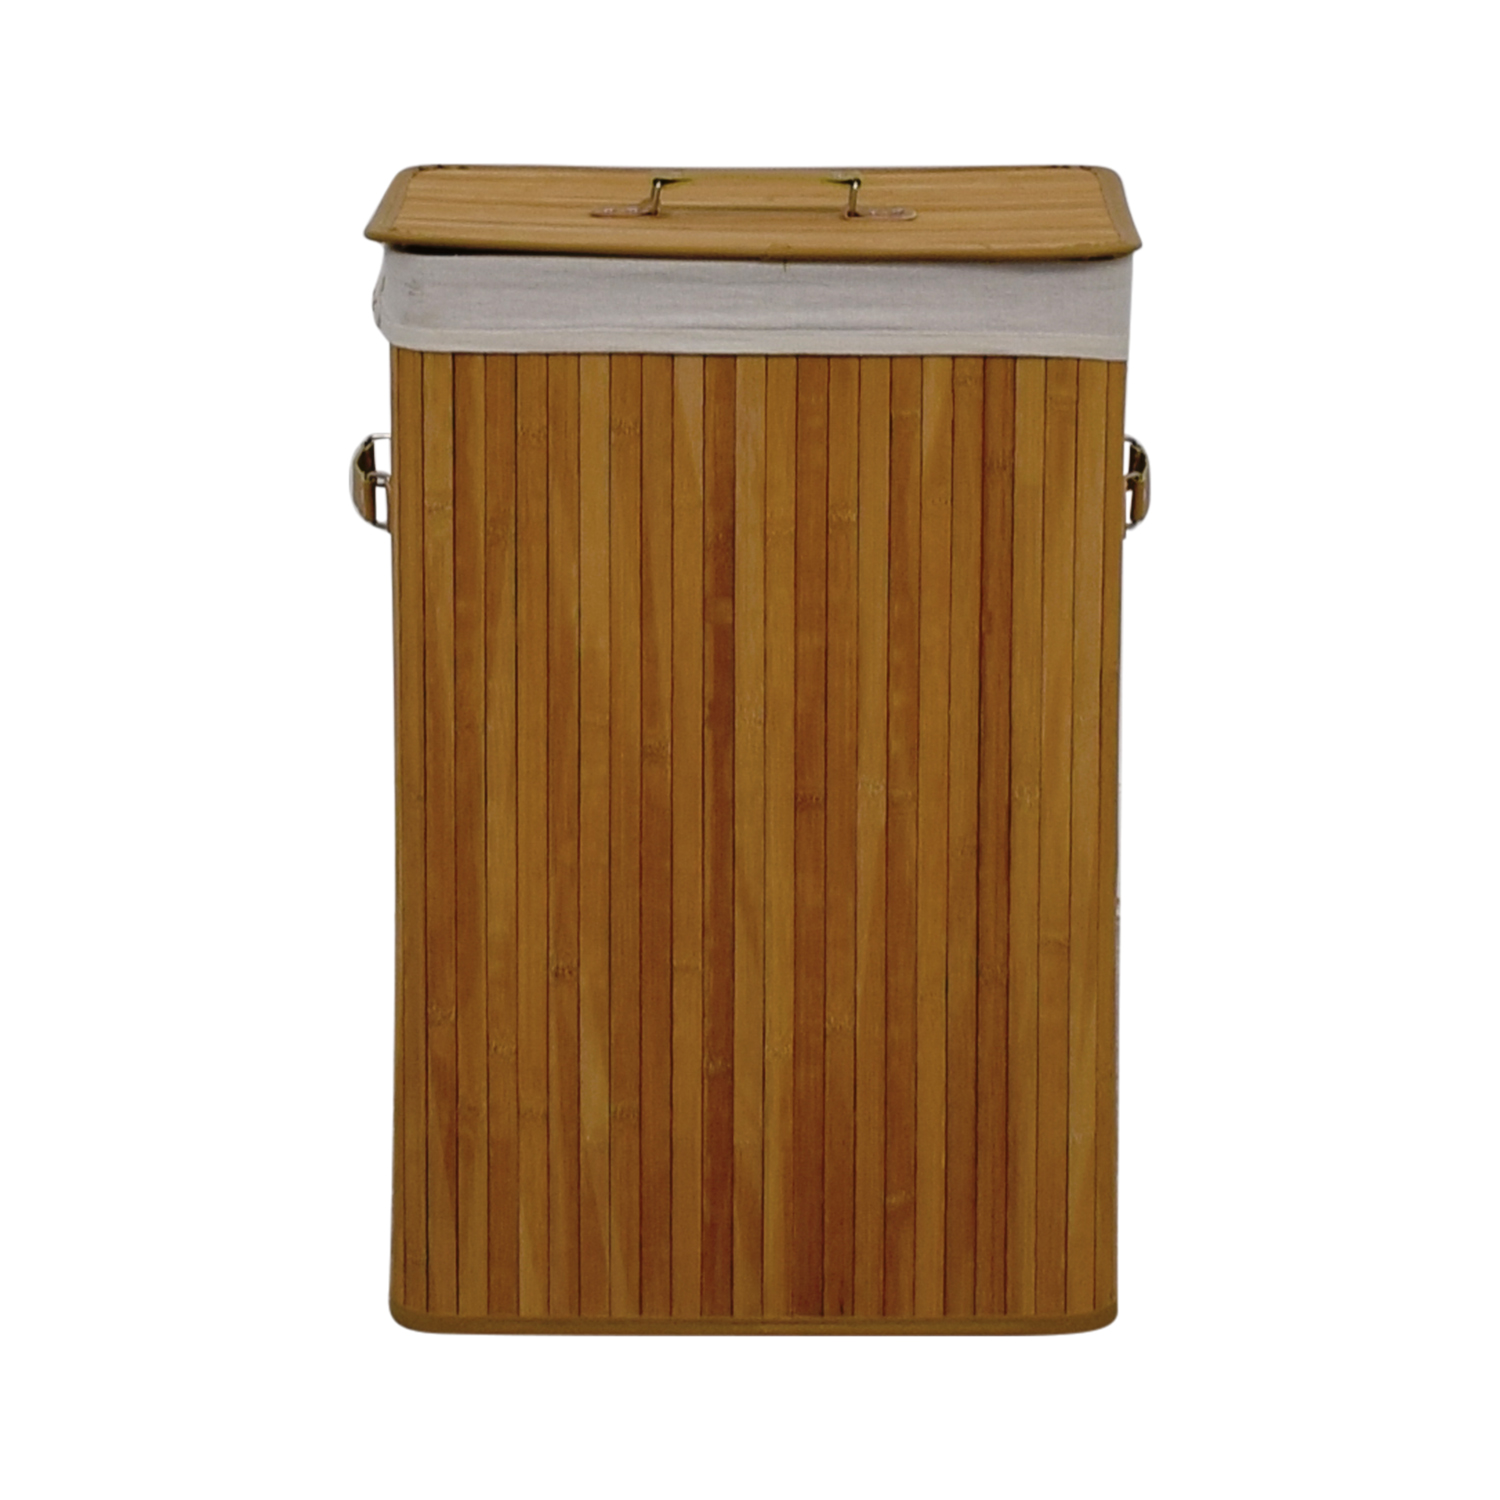 Giantex Giantex Natural Bamboo Laundry Hamper nyc